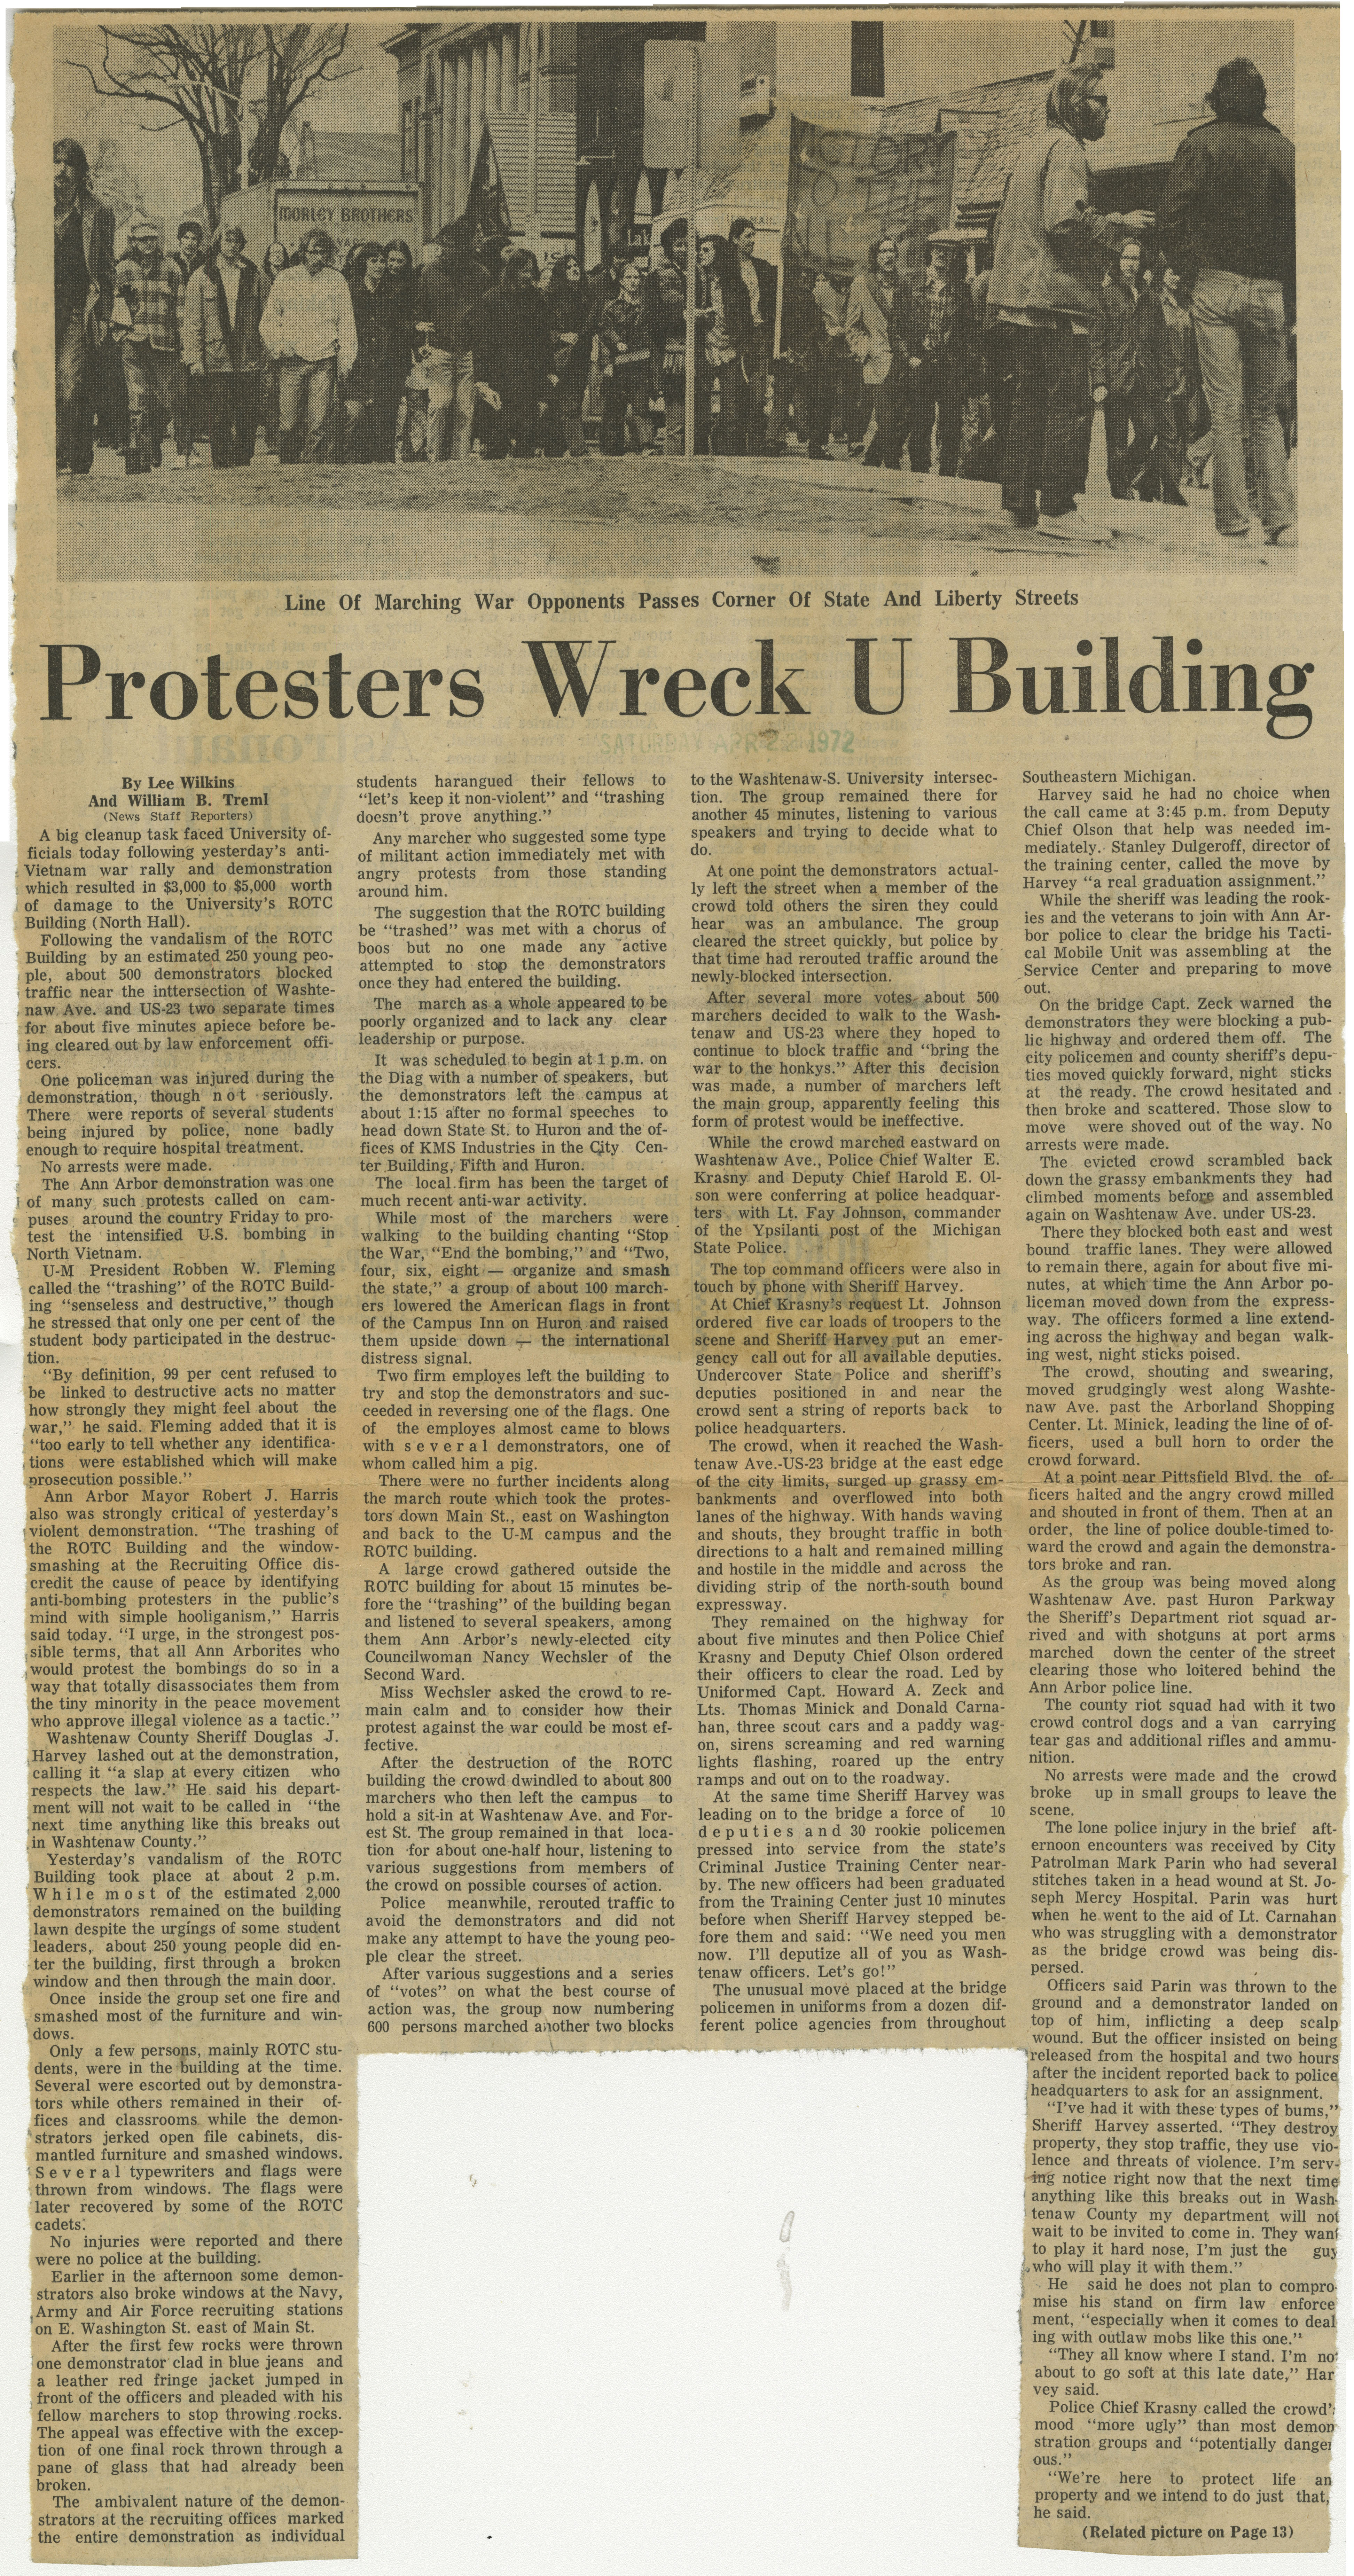 Protesters Wreck U Building image